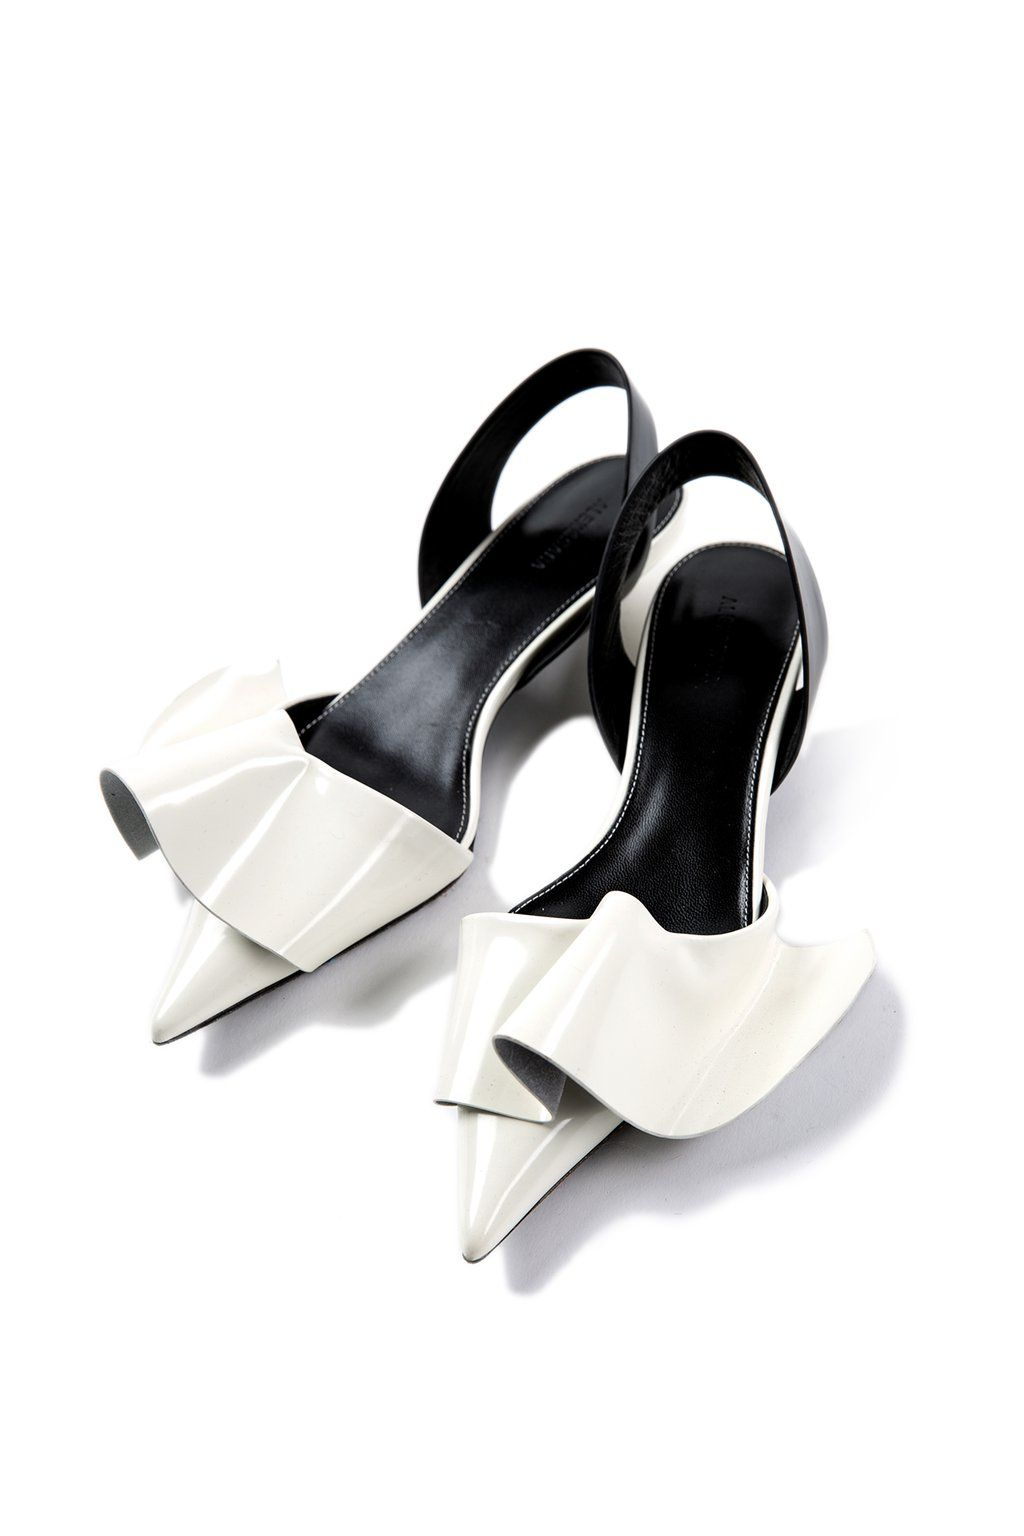 The Wendy Shoes White Shoes Chic Shoes Chic Shoes Shoes Kitten Heel Sandals